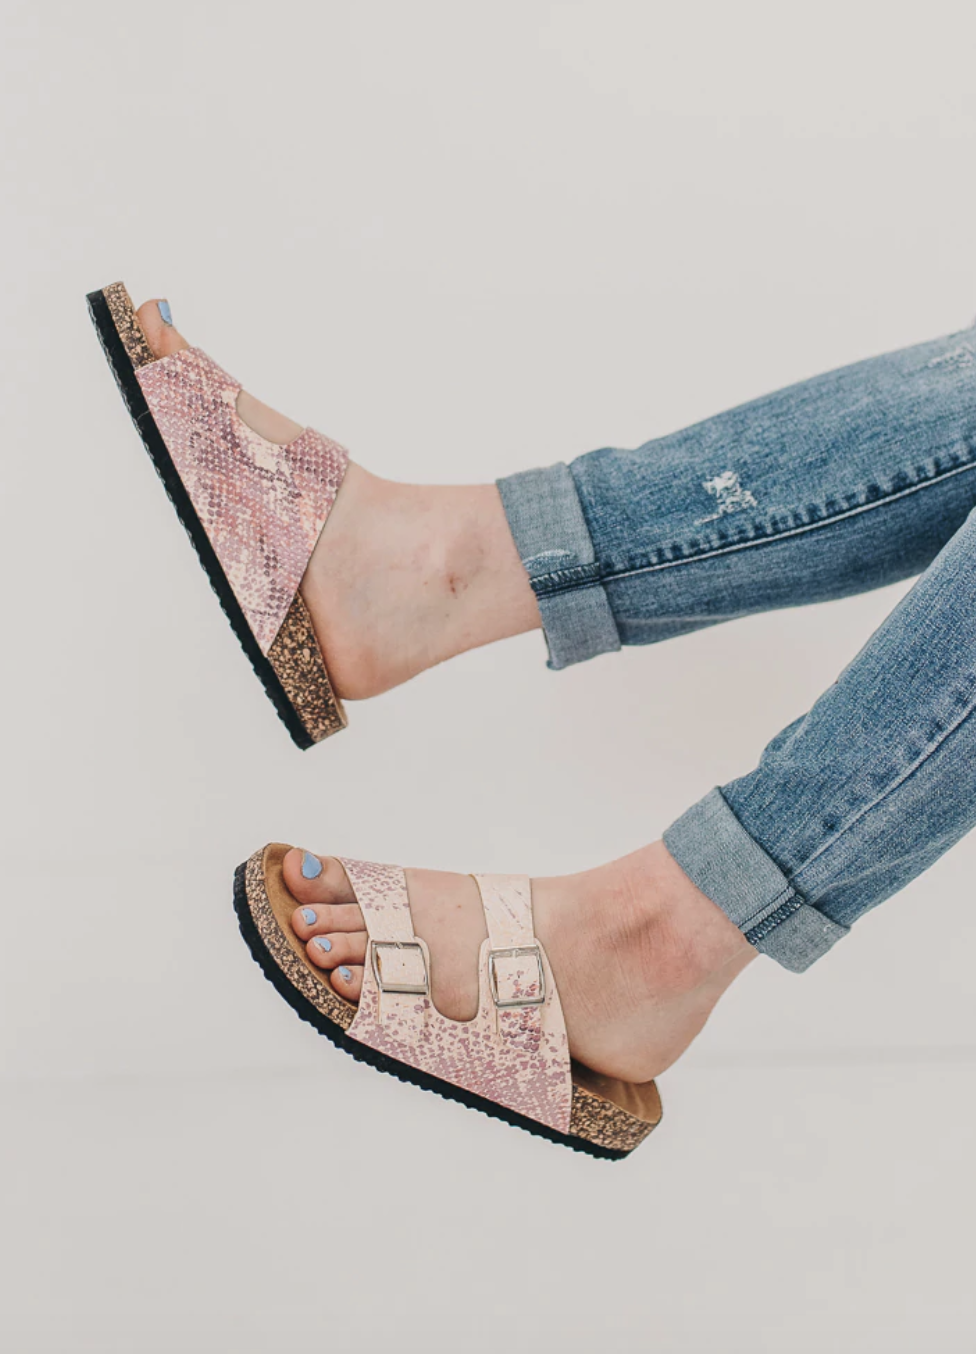 Open toed sandals with buckle strap detail.